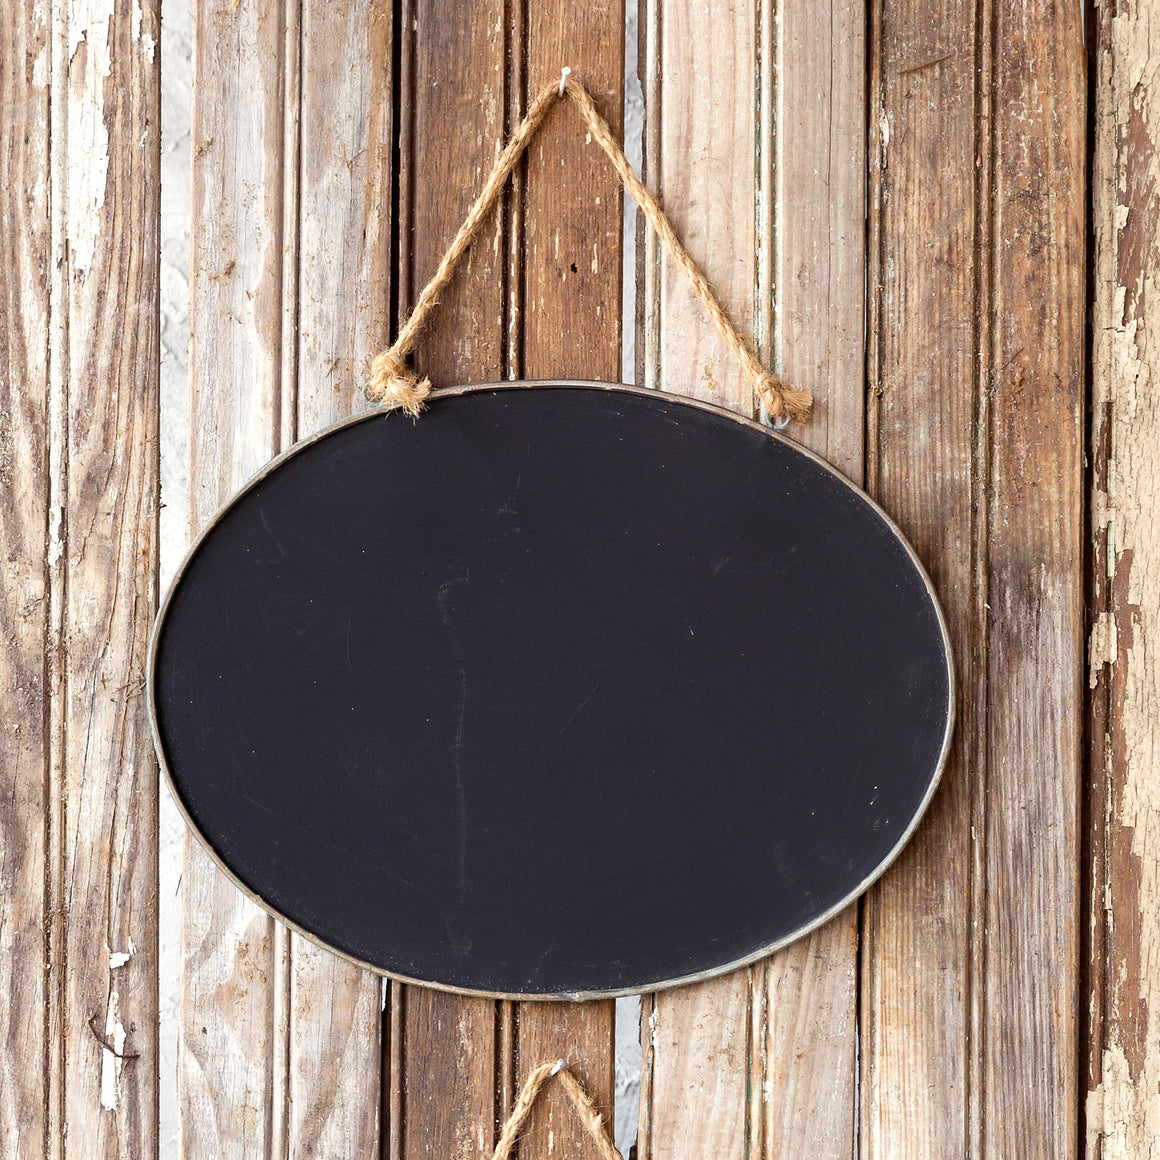 Blackboard/Chalkboard - Small Oval